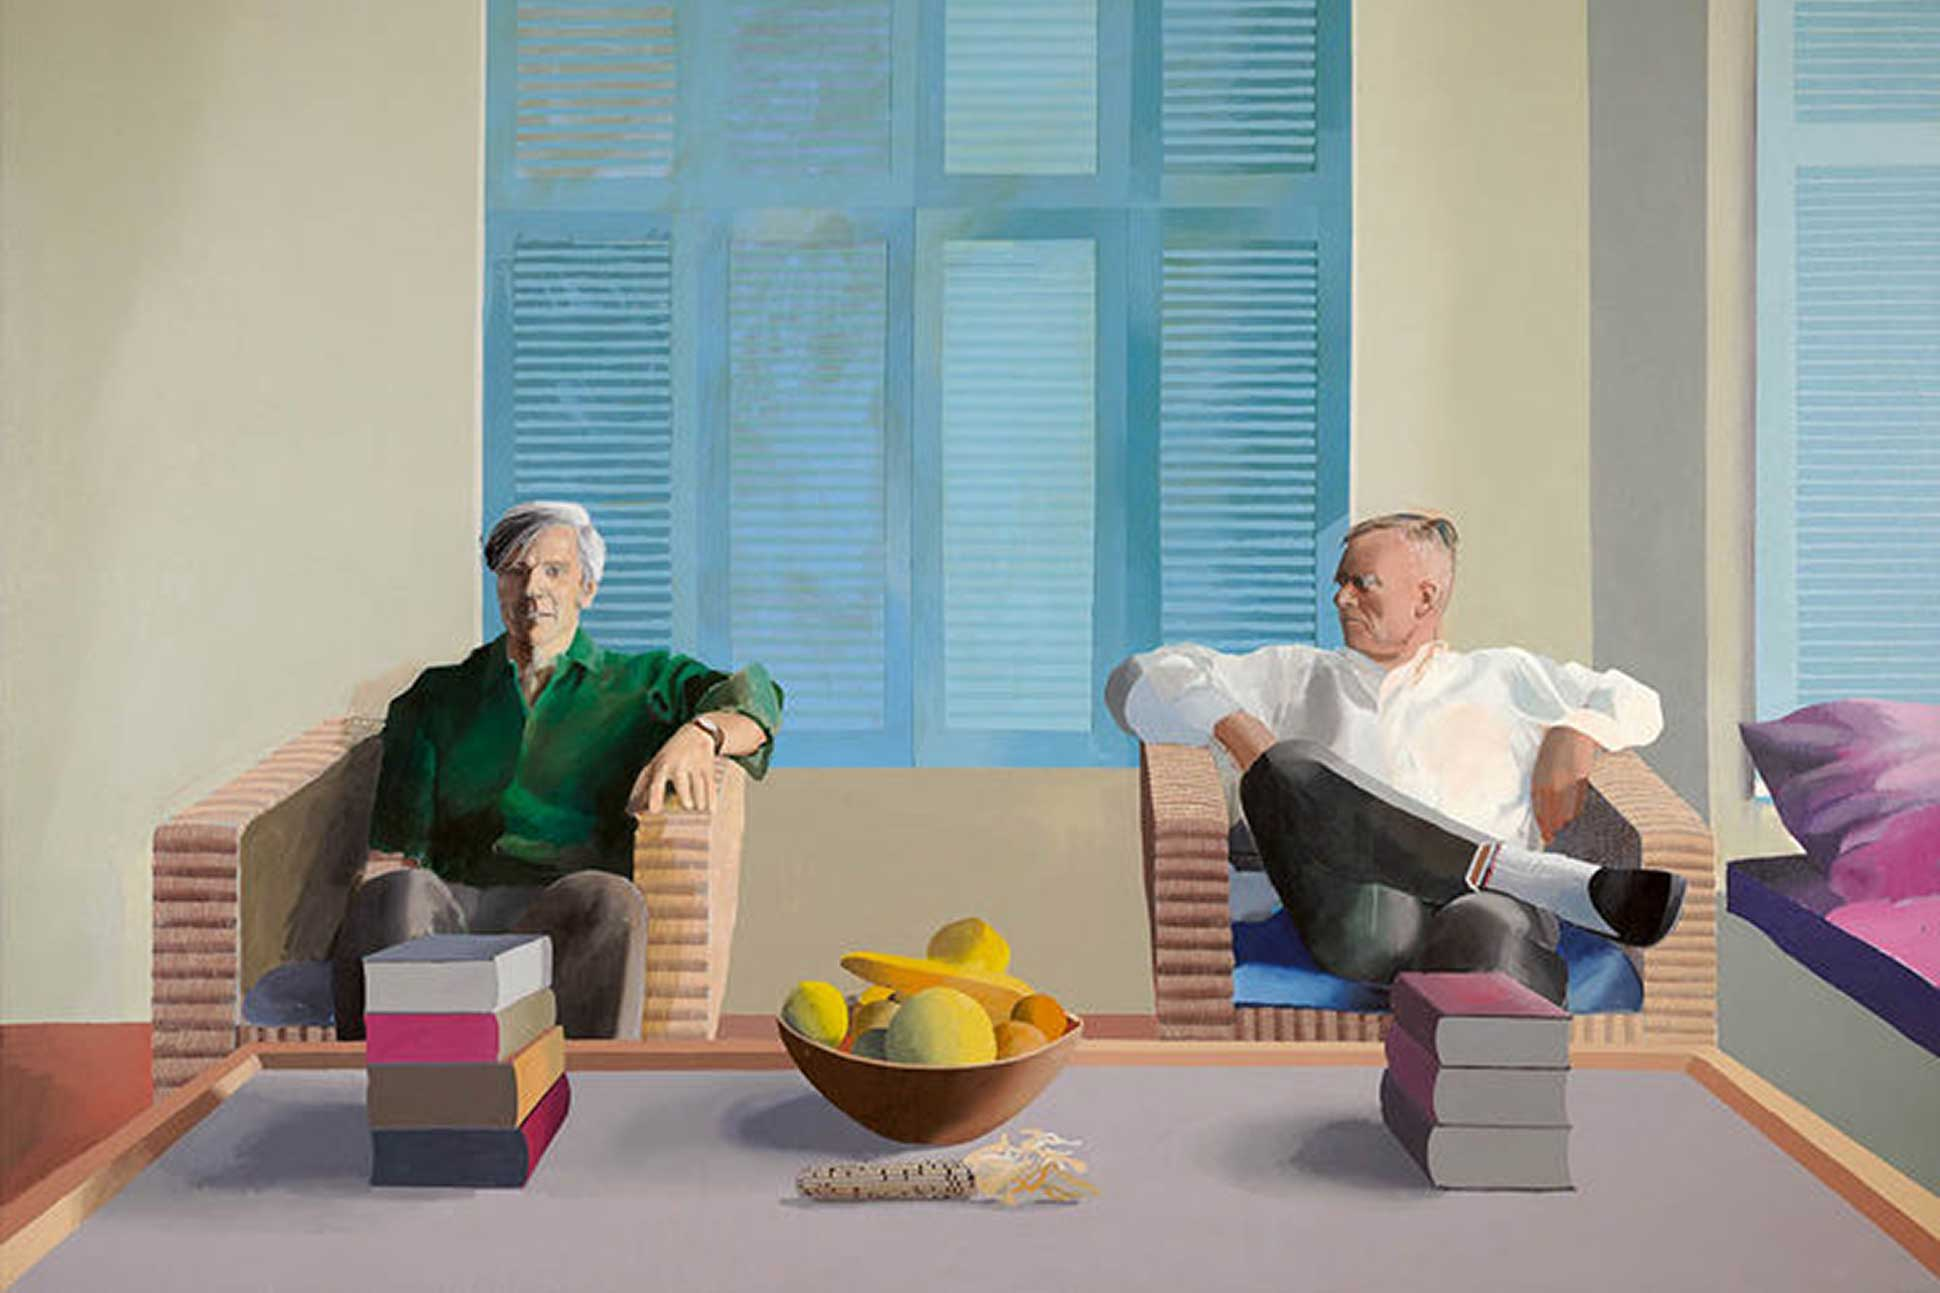 Photo of David Hockney's painting of Christopher Isherwood and Don Bachardy